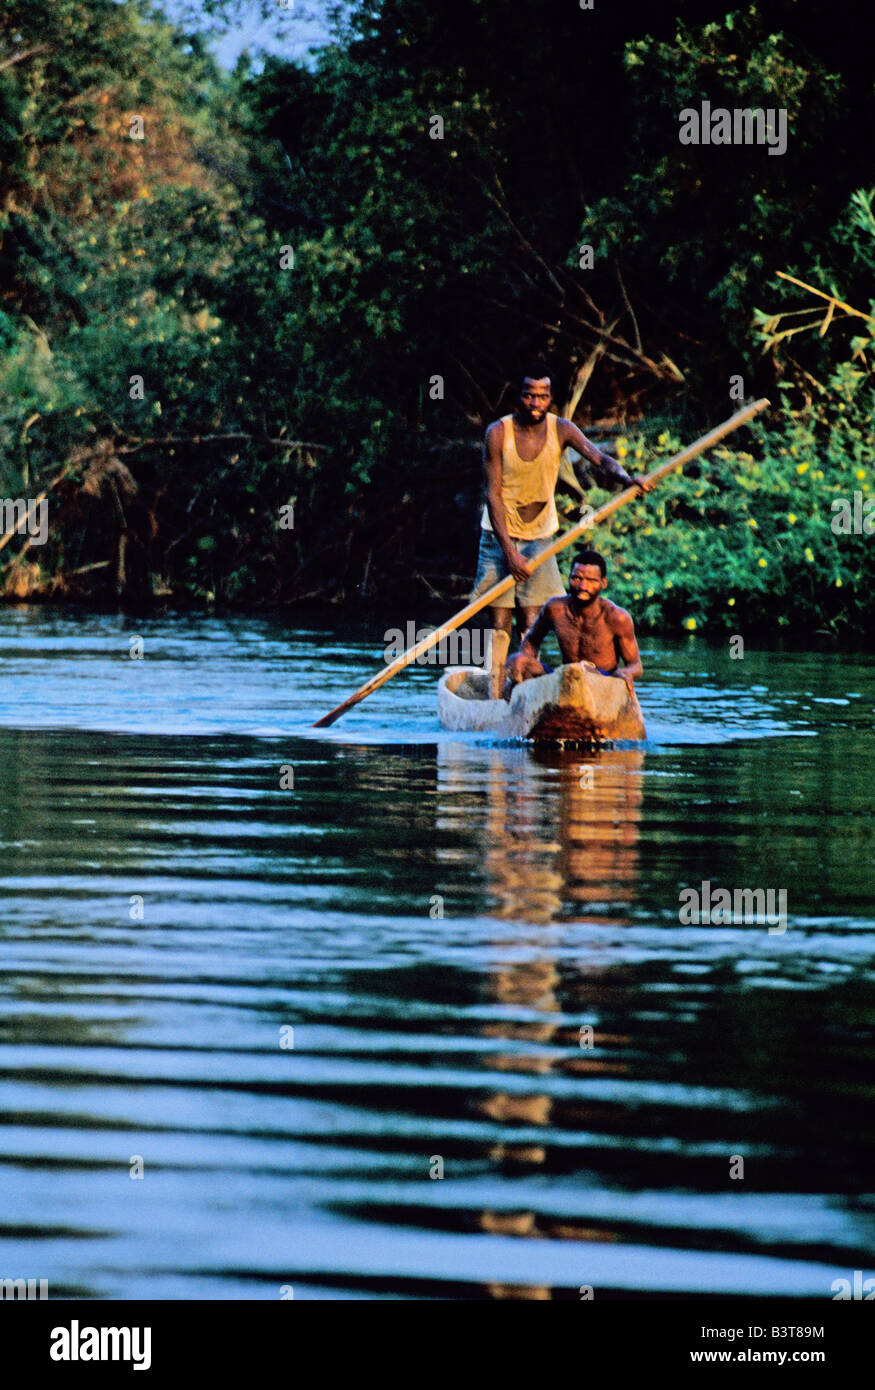 Africa, Bostwana. Two fishermen in dugout canoe paddle in river. - Stock Image